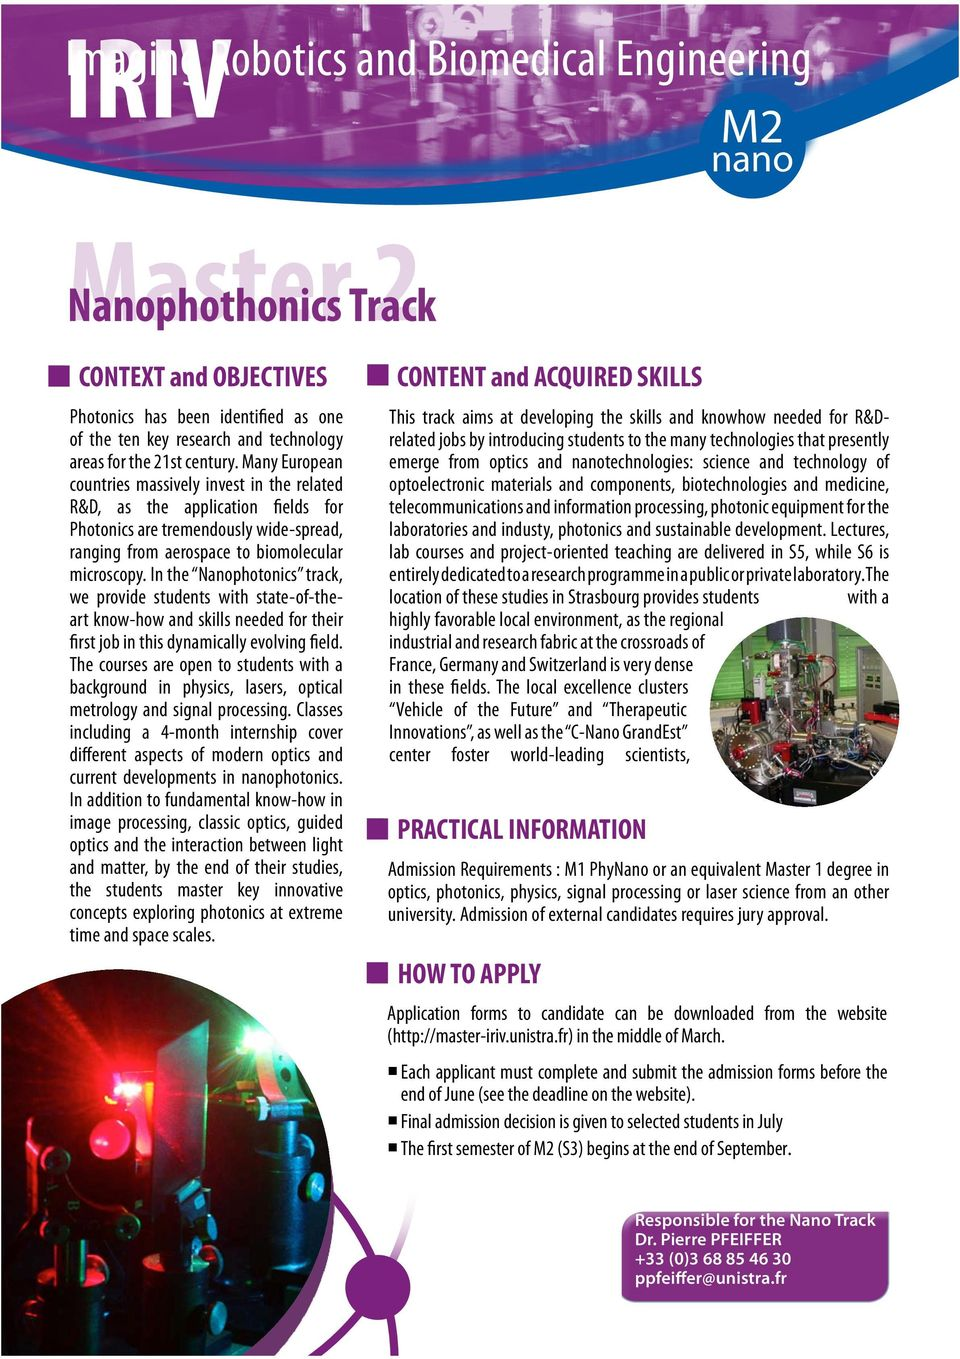 In the Nanophotonics track, we provide students with state-of-theart know-how and skills needed for their first job in this dynamically evolving field.